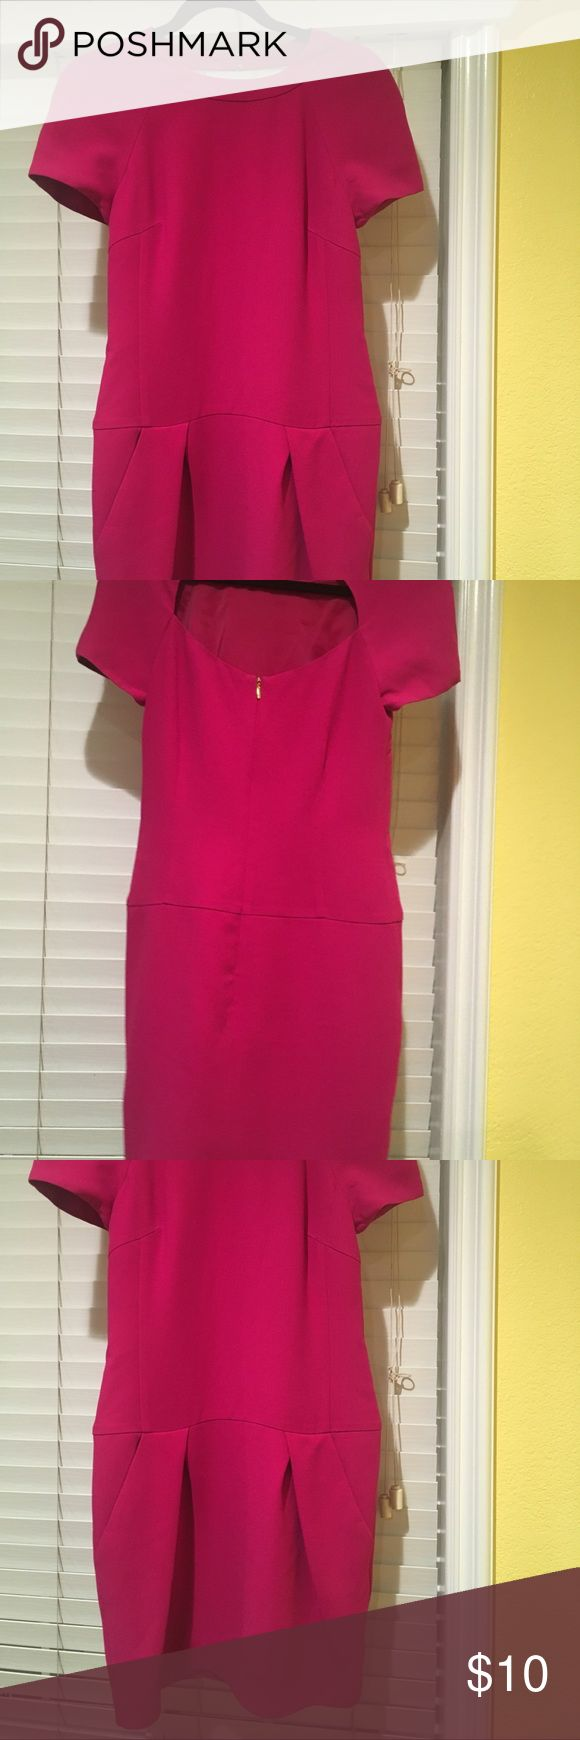 Pink Trina Turk dress size medium Pink Trina Turk dress Trina Turk Dresses Mini